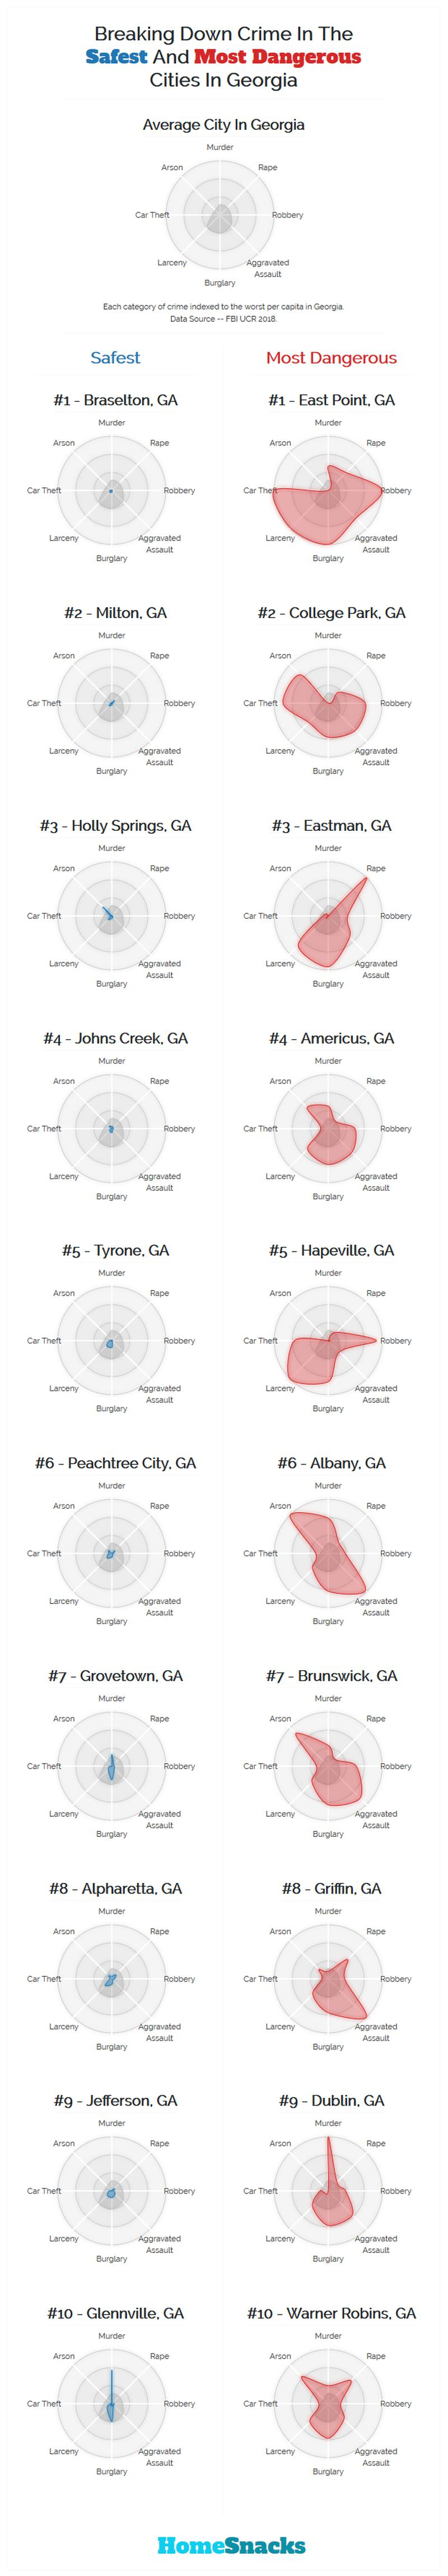 Safest Cities in Georgia Breakdown